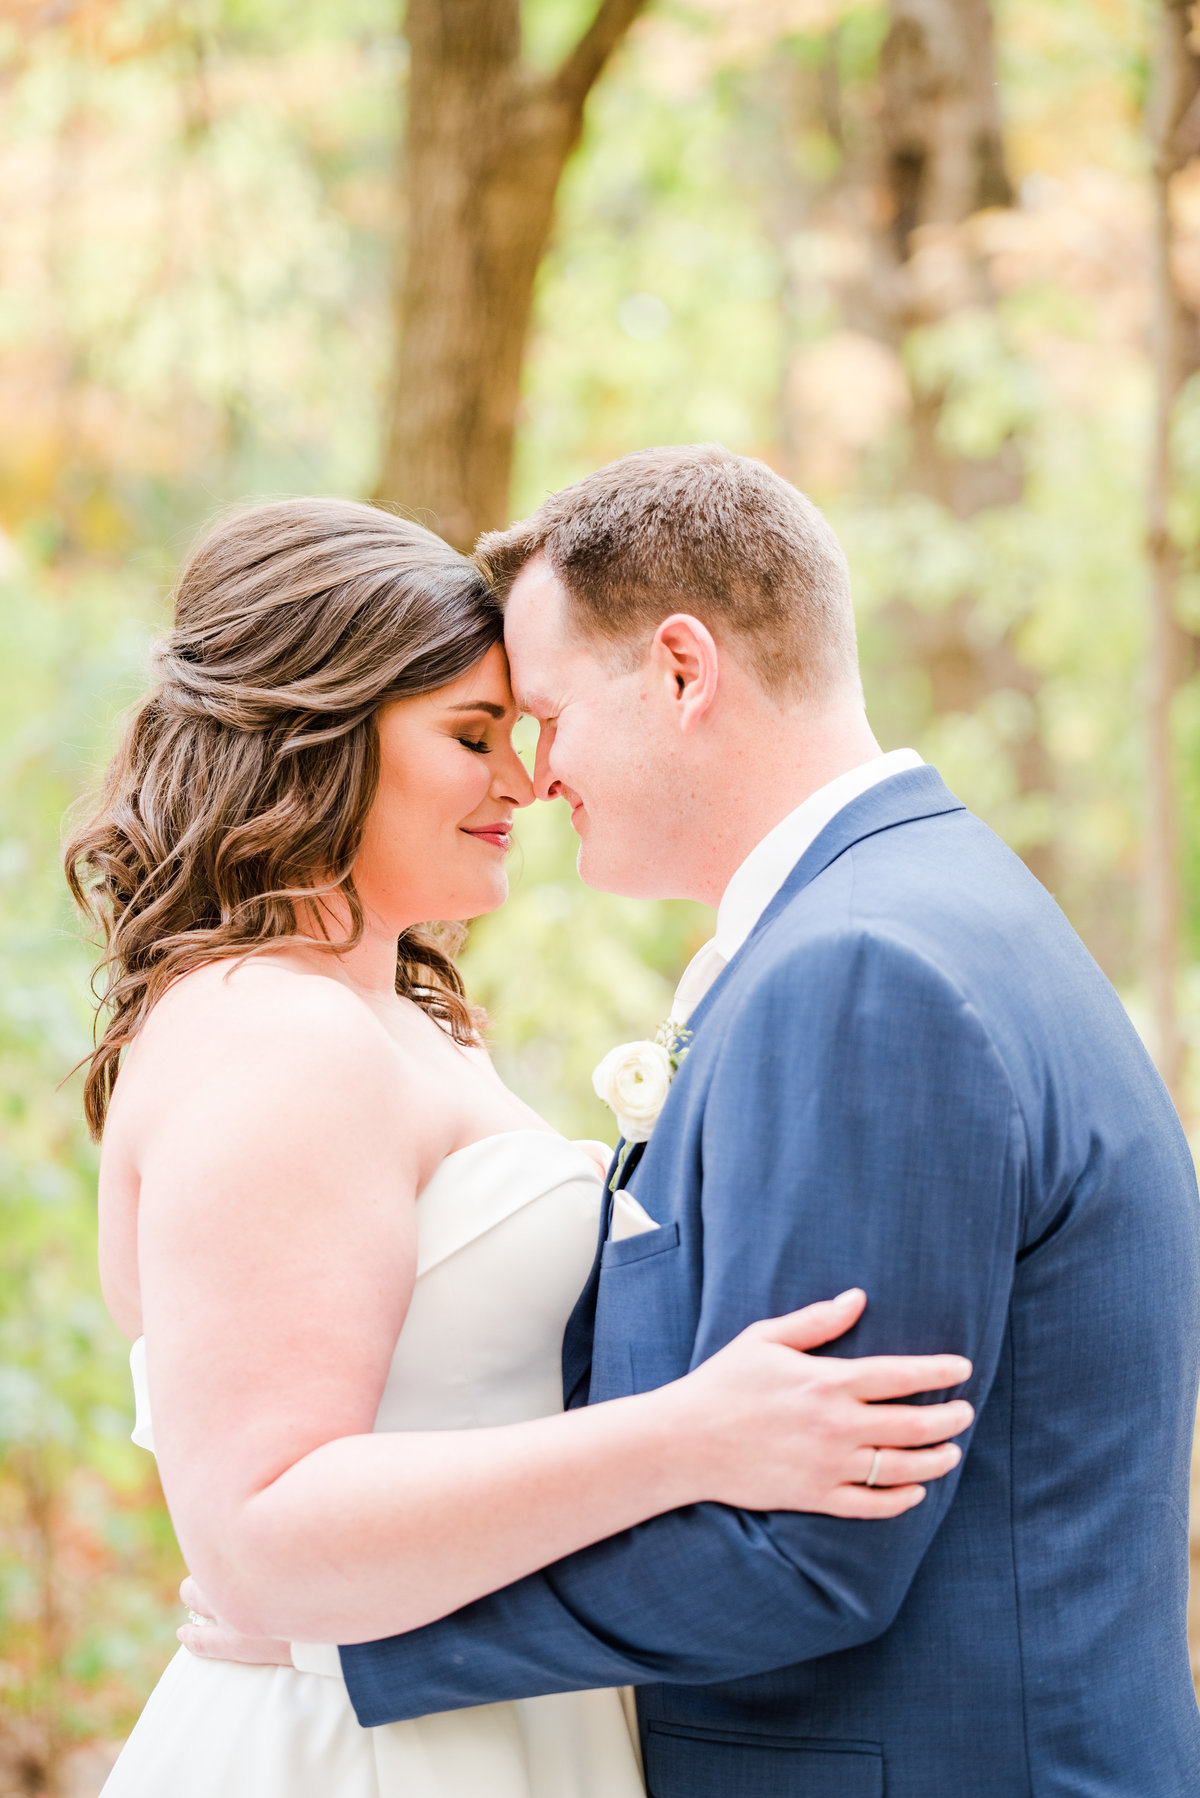 Newlywed Portraits Cait Potter Creative LLC Milltop Potters Bridge Noblesville Square Courthouse Wedding-2